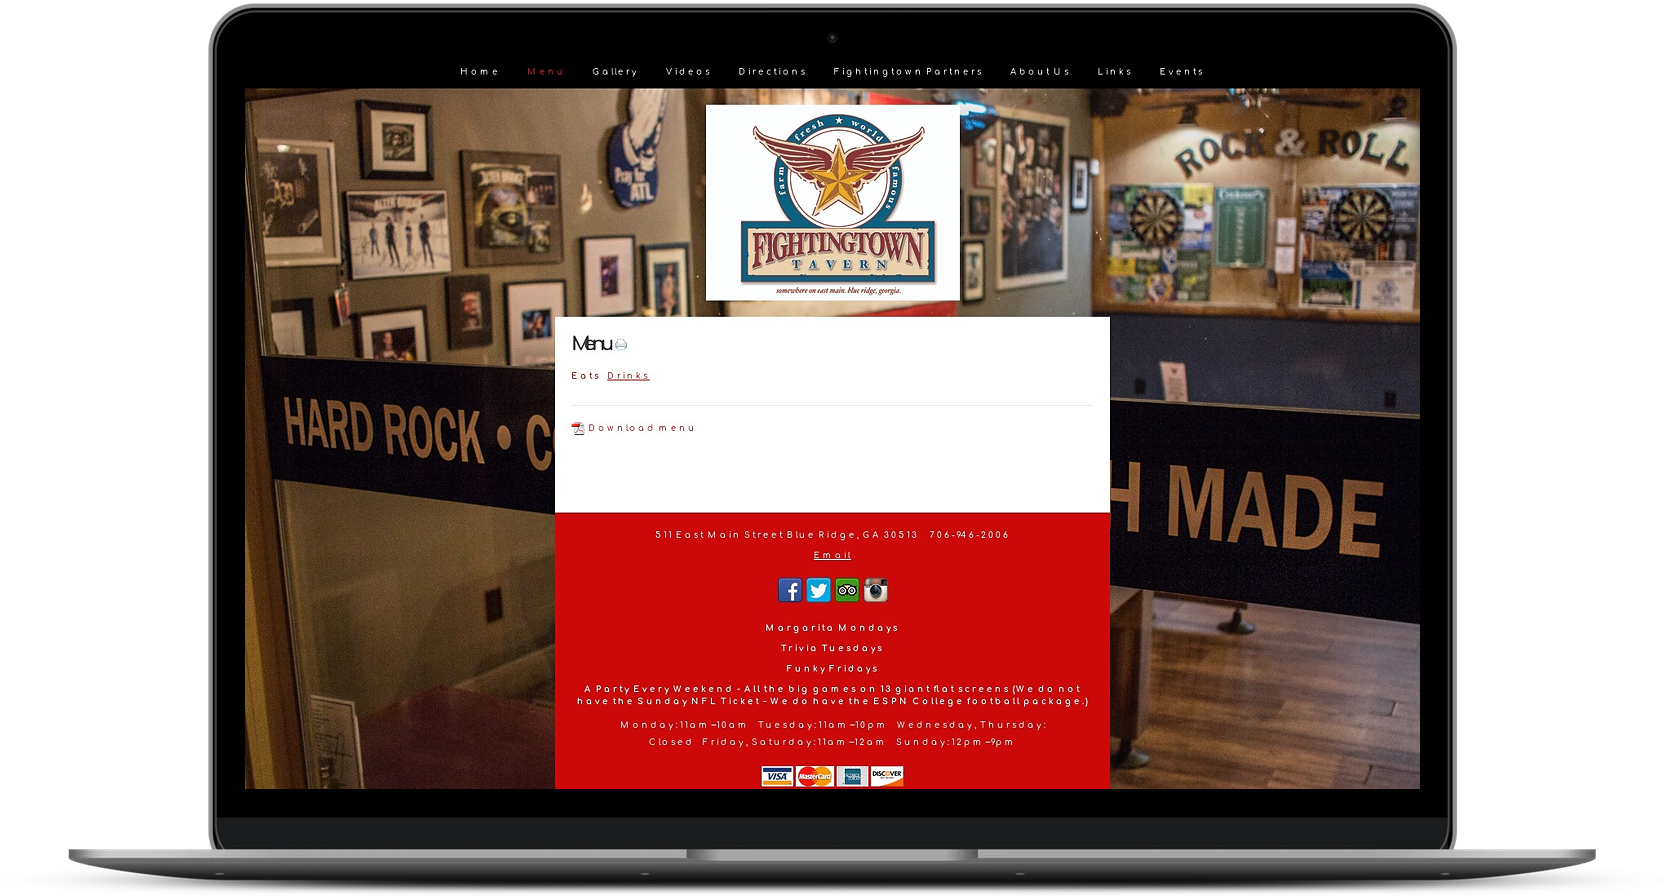 Fightingtown Tavern Website Before